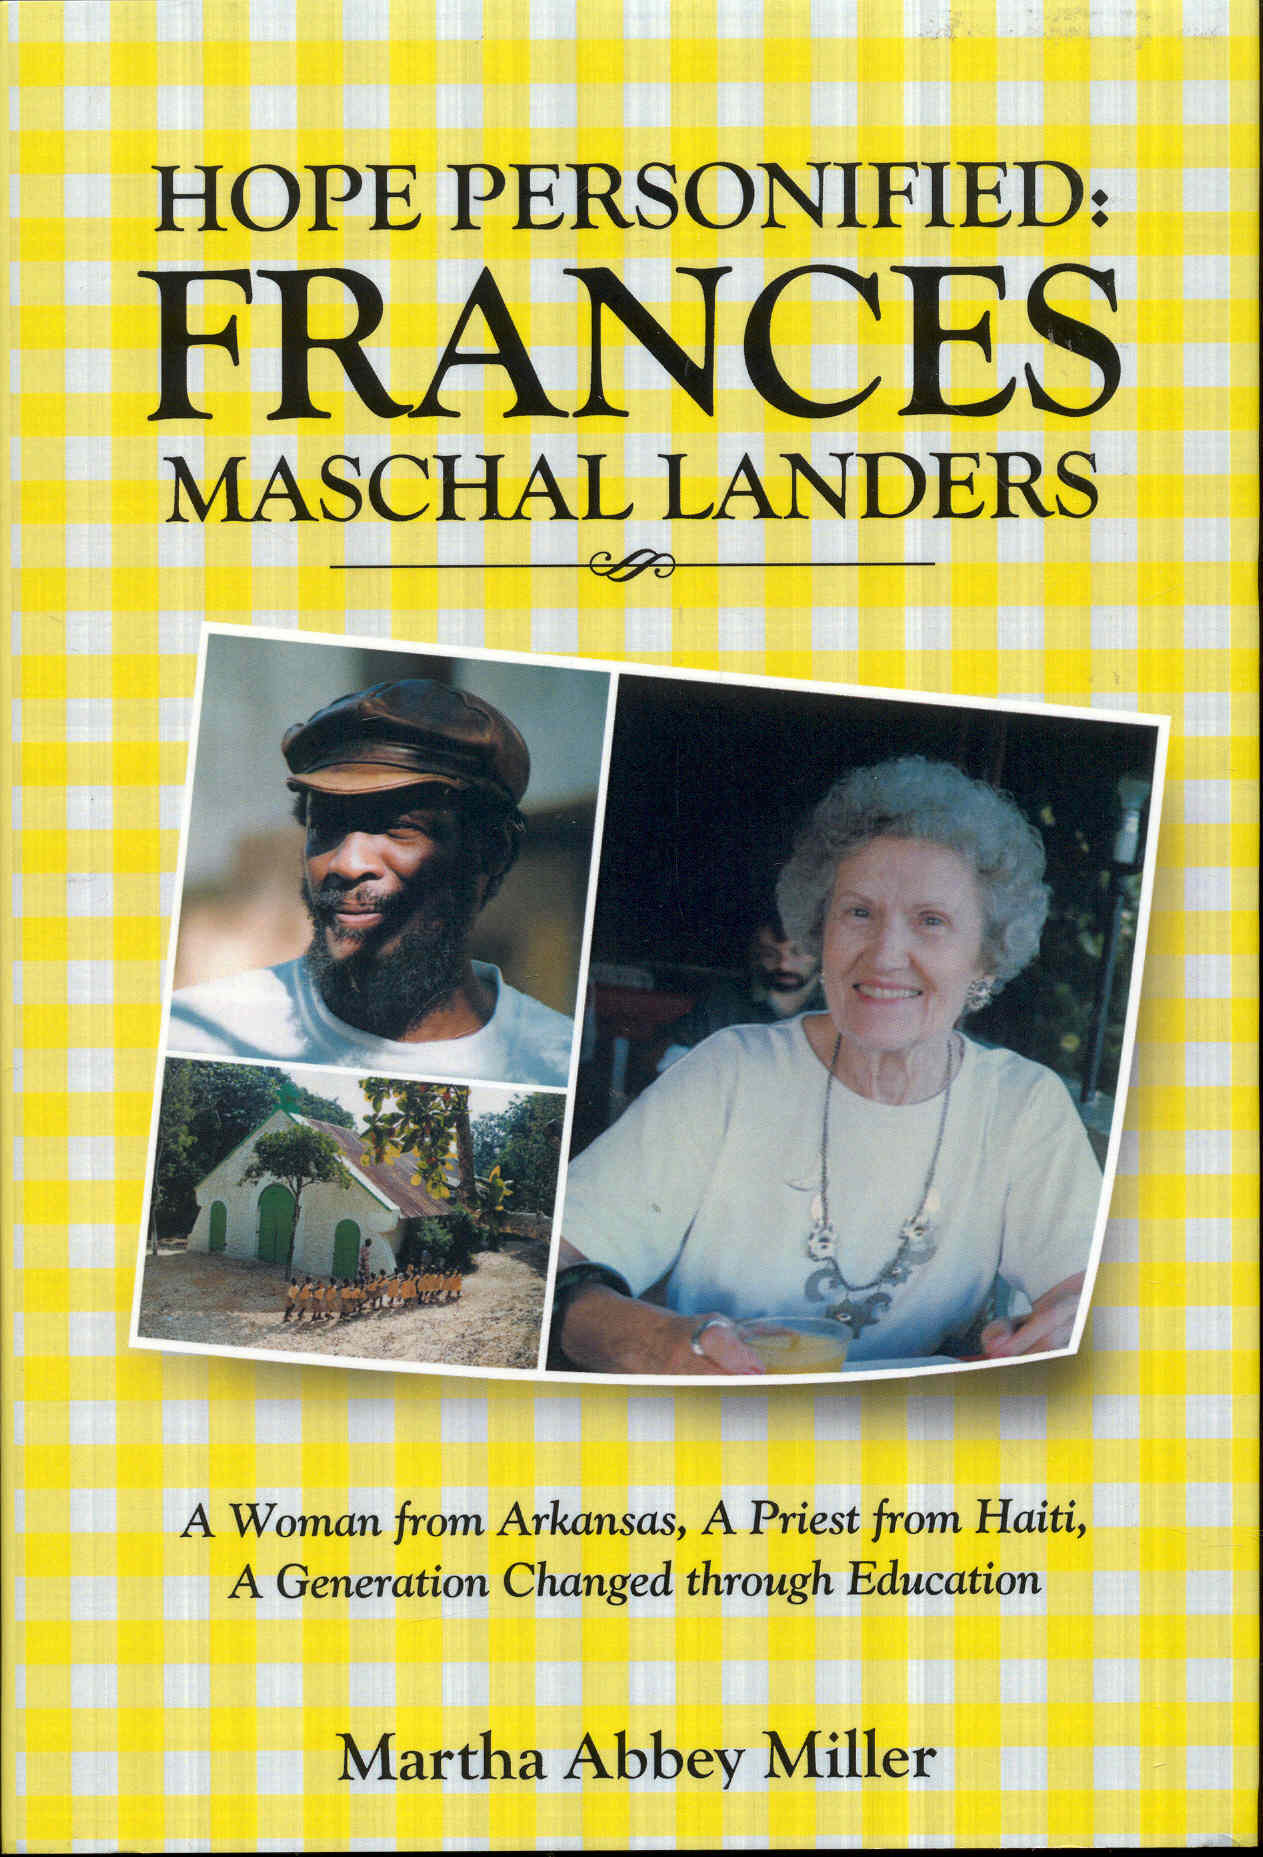 Image for Hope Personified: Frances Maschal Landers